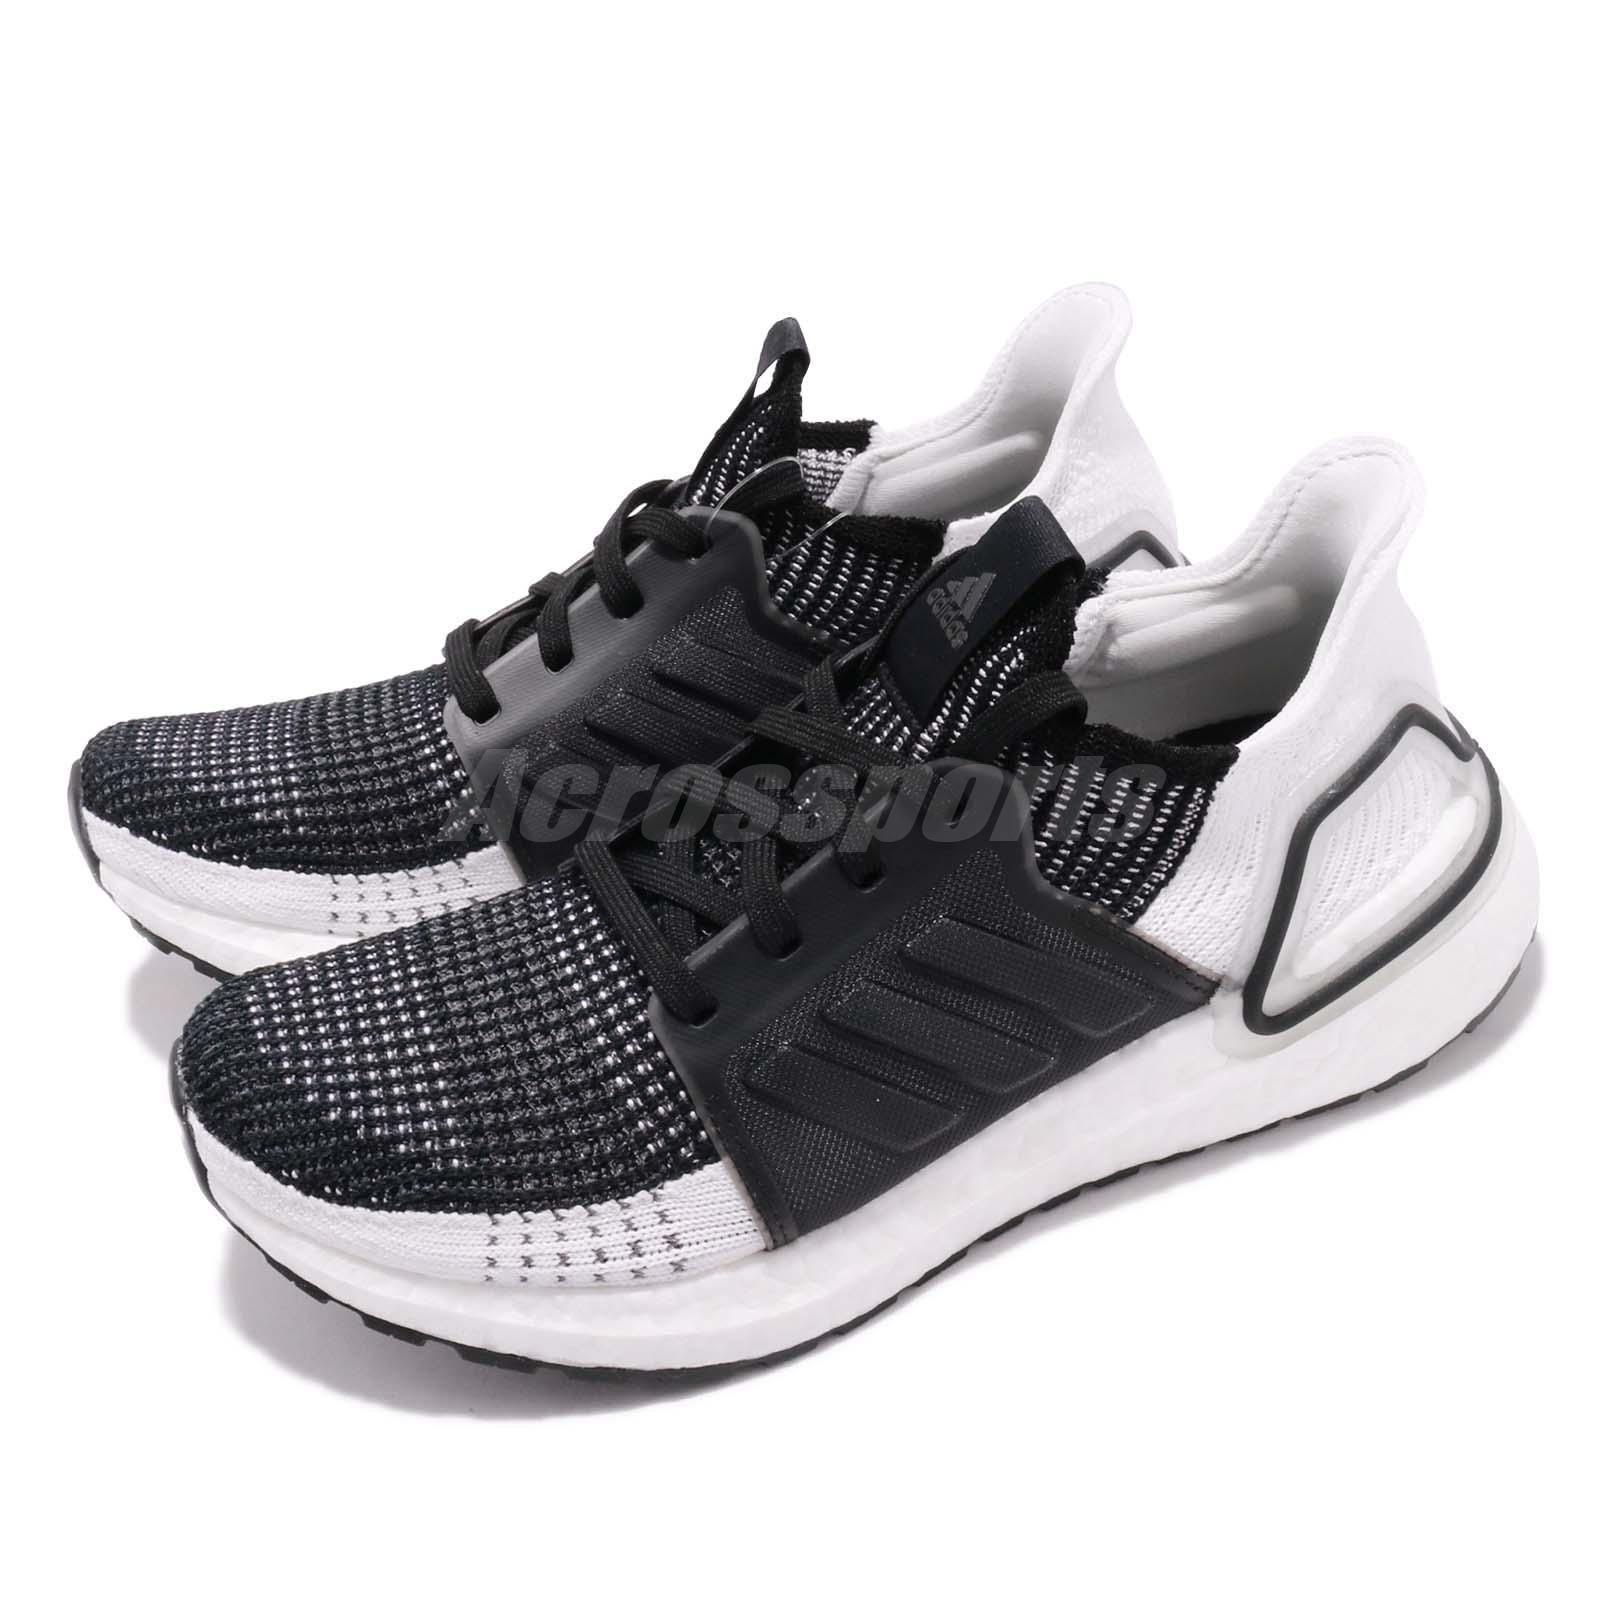 63f83ed9a Details about adidas UltraBoost 19 W Black Grey White Women Running Shoes  Sneakers B75879